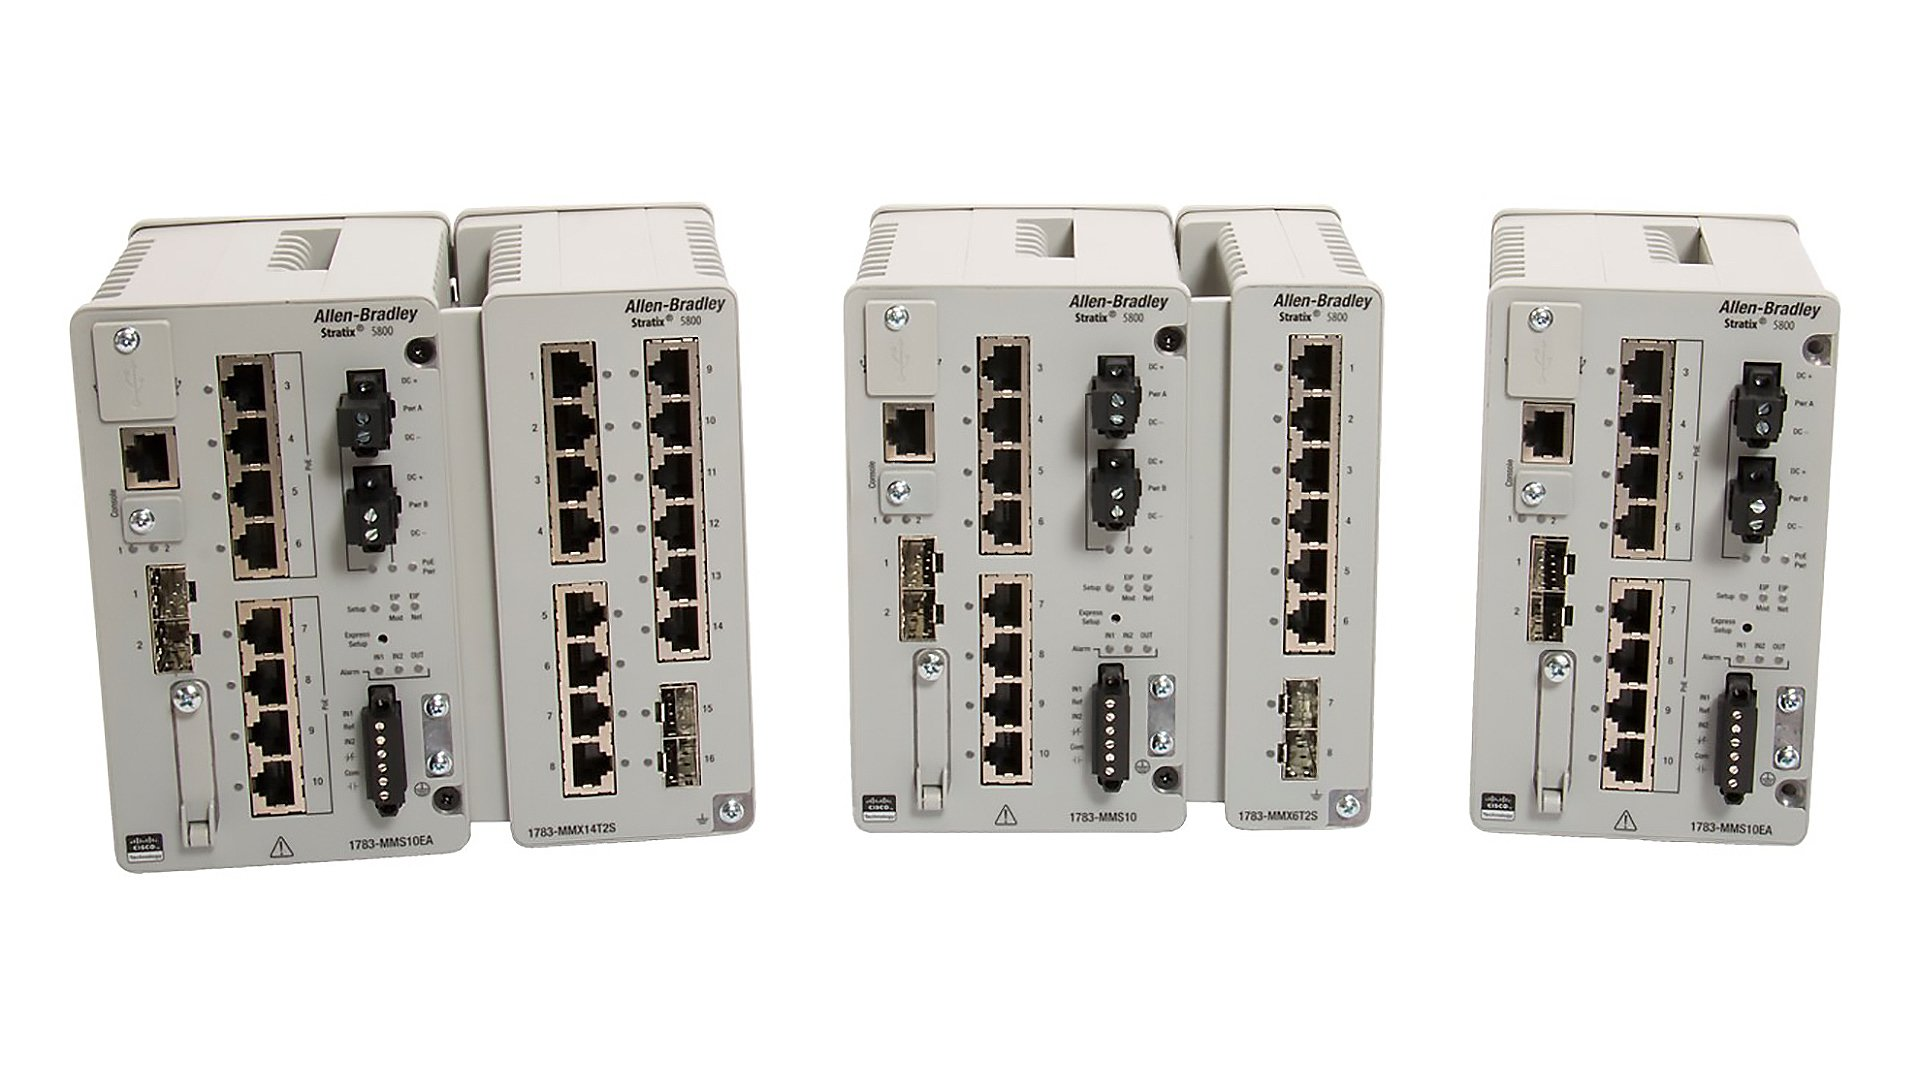 Shows front view of Stratix 5800 switch with expansion module attached for first and second image. The third image shows front view of Stratix 5800 switch separately